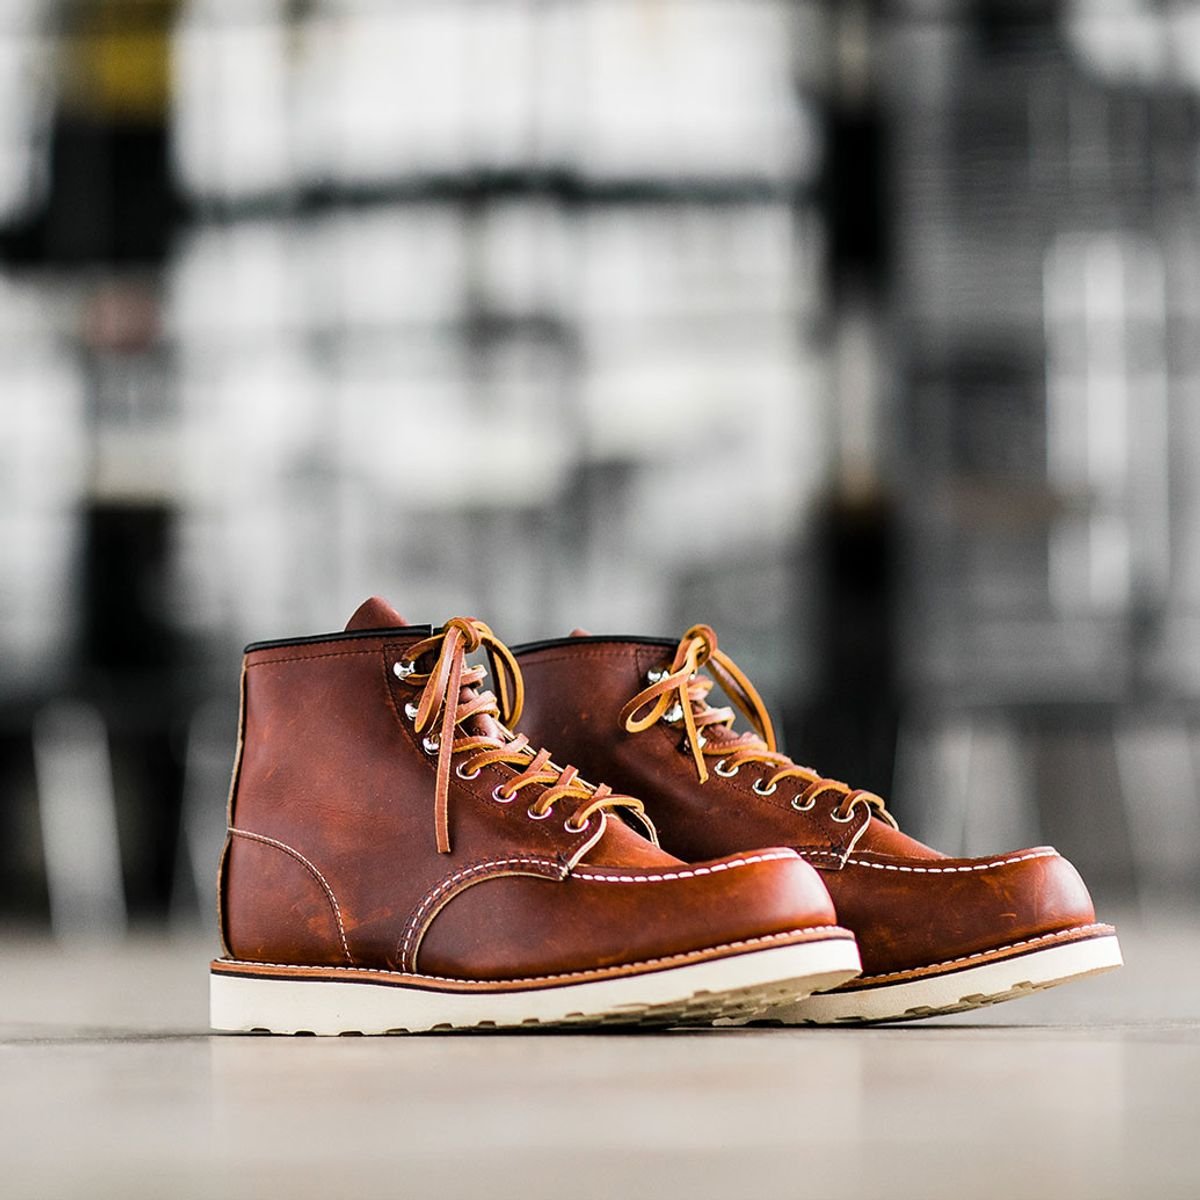 6-INCH<br/>CLASSIC MOC